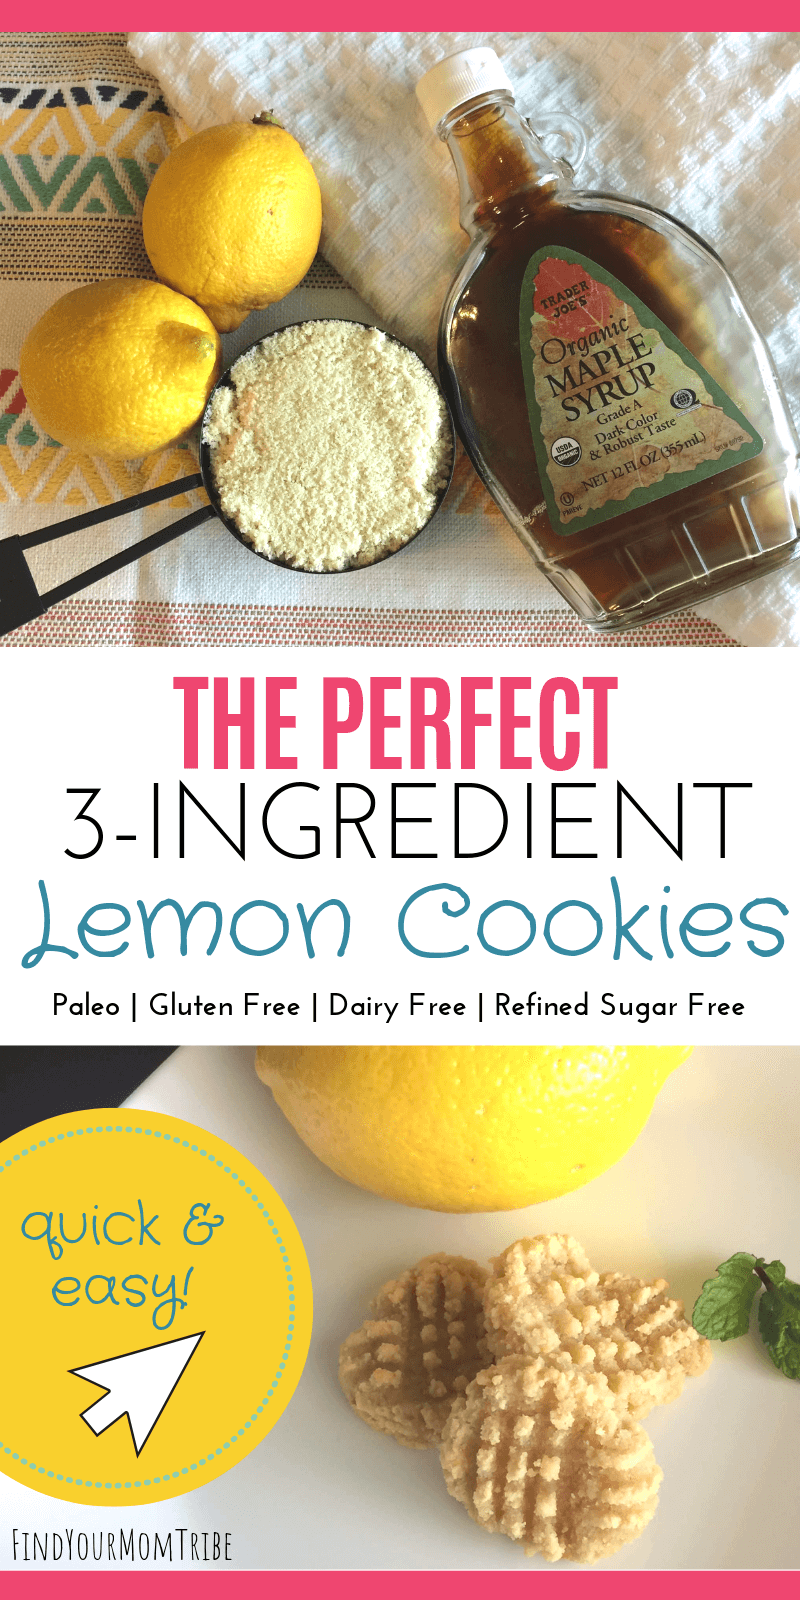 The Perfect 3-Ingredient Lemon Cookies (Quick, Easy, & Healthy images